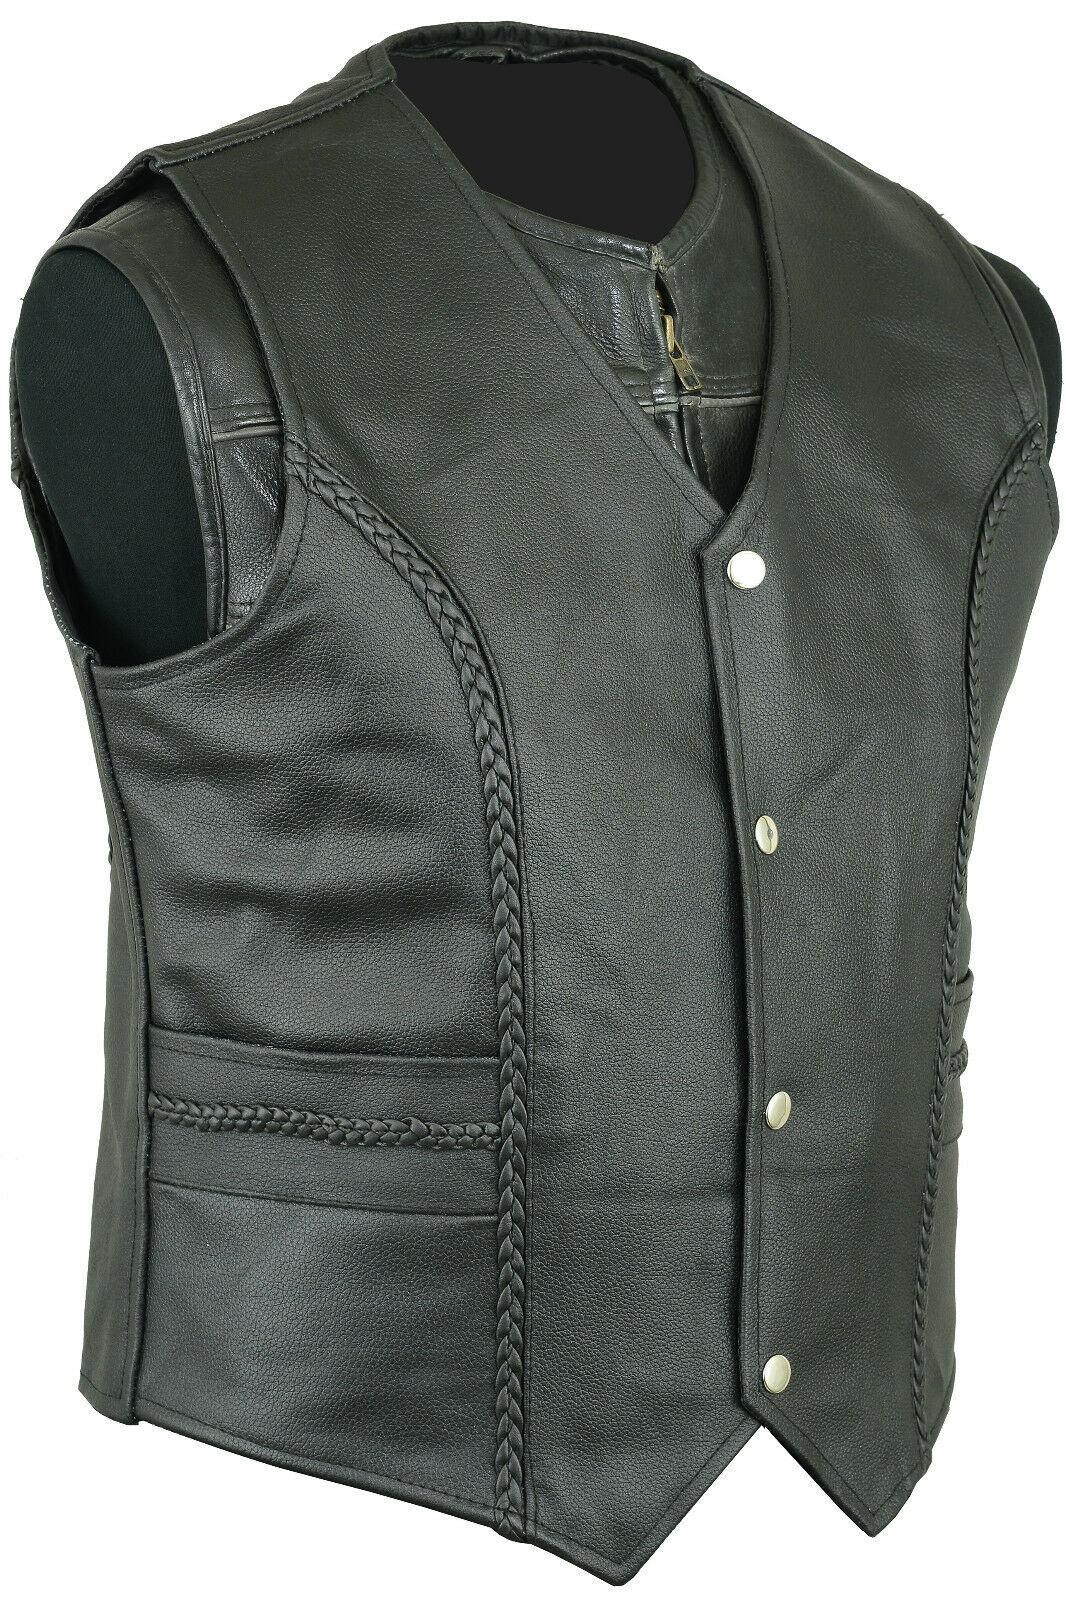 Mens Leather Fashion Fashion Fashion Vest Waistcoat Motorcycle Cruiser Top Vintage | Qualität Produkt